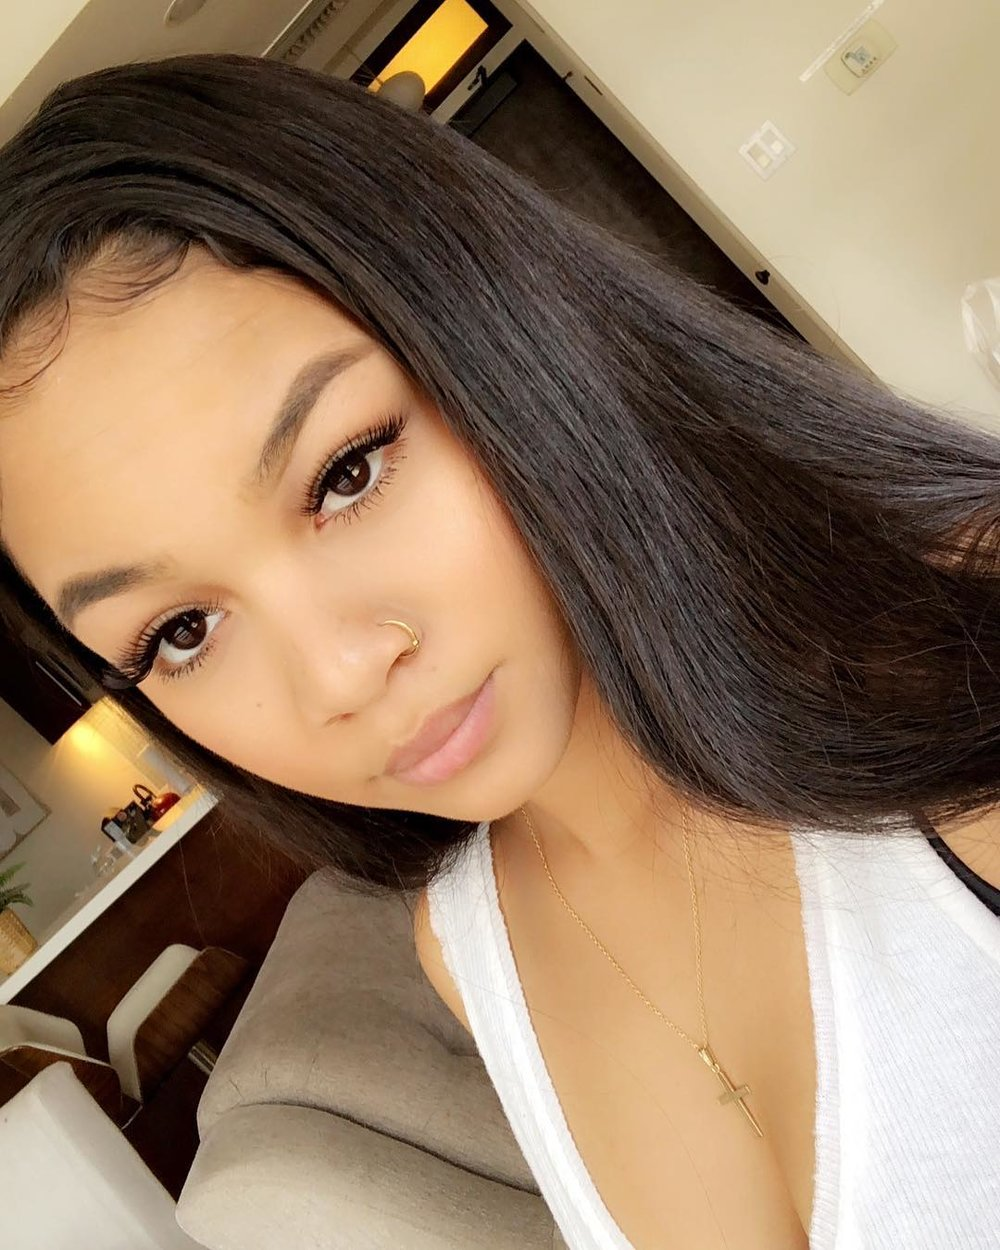 "Wolftyla, 21 - Half Korean and half African American, Wolftyla initially gained fame as a Vine comedian, and now has 1.5 million Instagram followers. Since then, the Queens, New York, native has transitioned into singing and songwriting, with her 2017 song ""Impressed"" racking up more than 1.5 million plays on Soundcloud. Wolftyla's sound has been compared to R&B songstresses like Kehlani and Jhene Aiko, and she has worked with R&B and hip-hop artists like Tory Lanez, Party Next Door, and Elle Varner. In addition to singing, Wolftyla is the founder of the #WolfMovement, a social movement that promotes positivity, love and self-confidence. — C.N.Image Courtesy of Wolftyla"